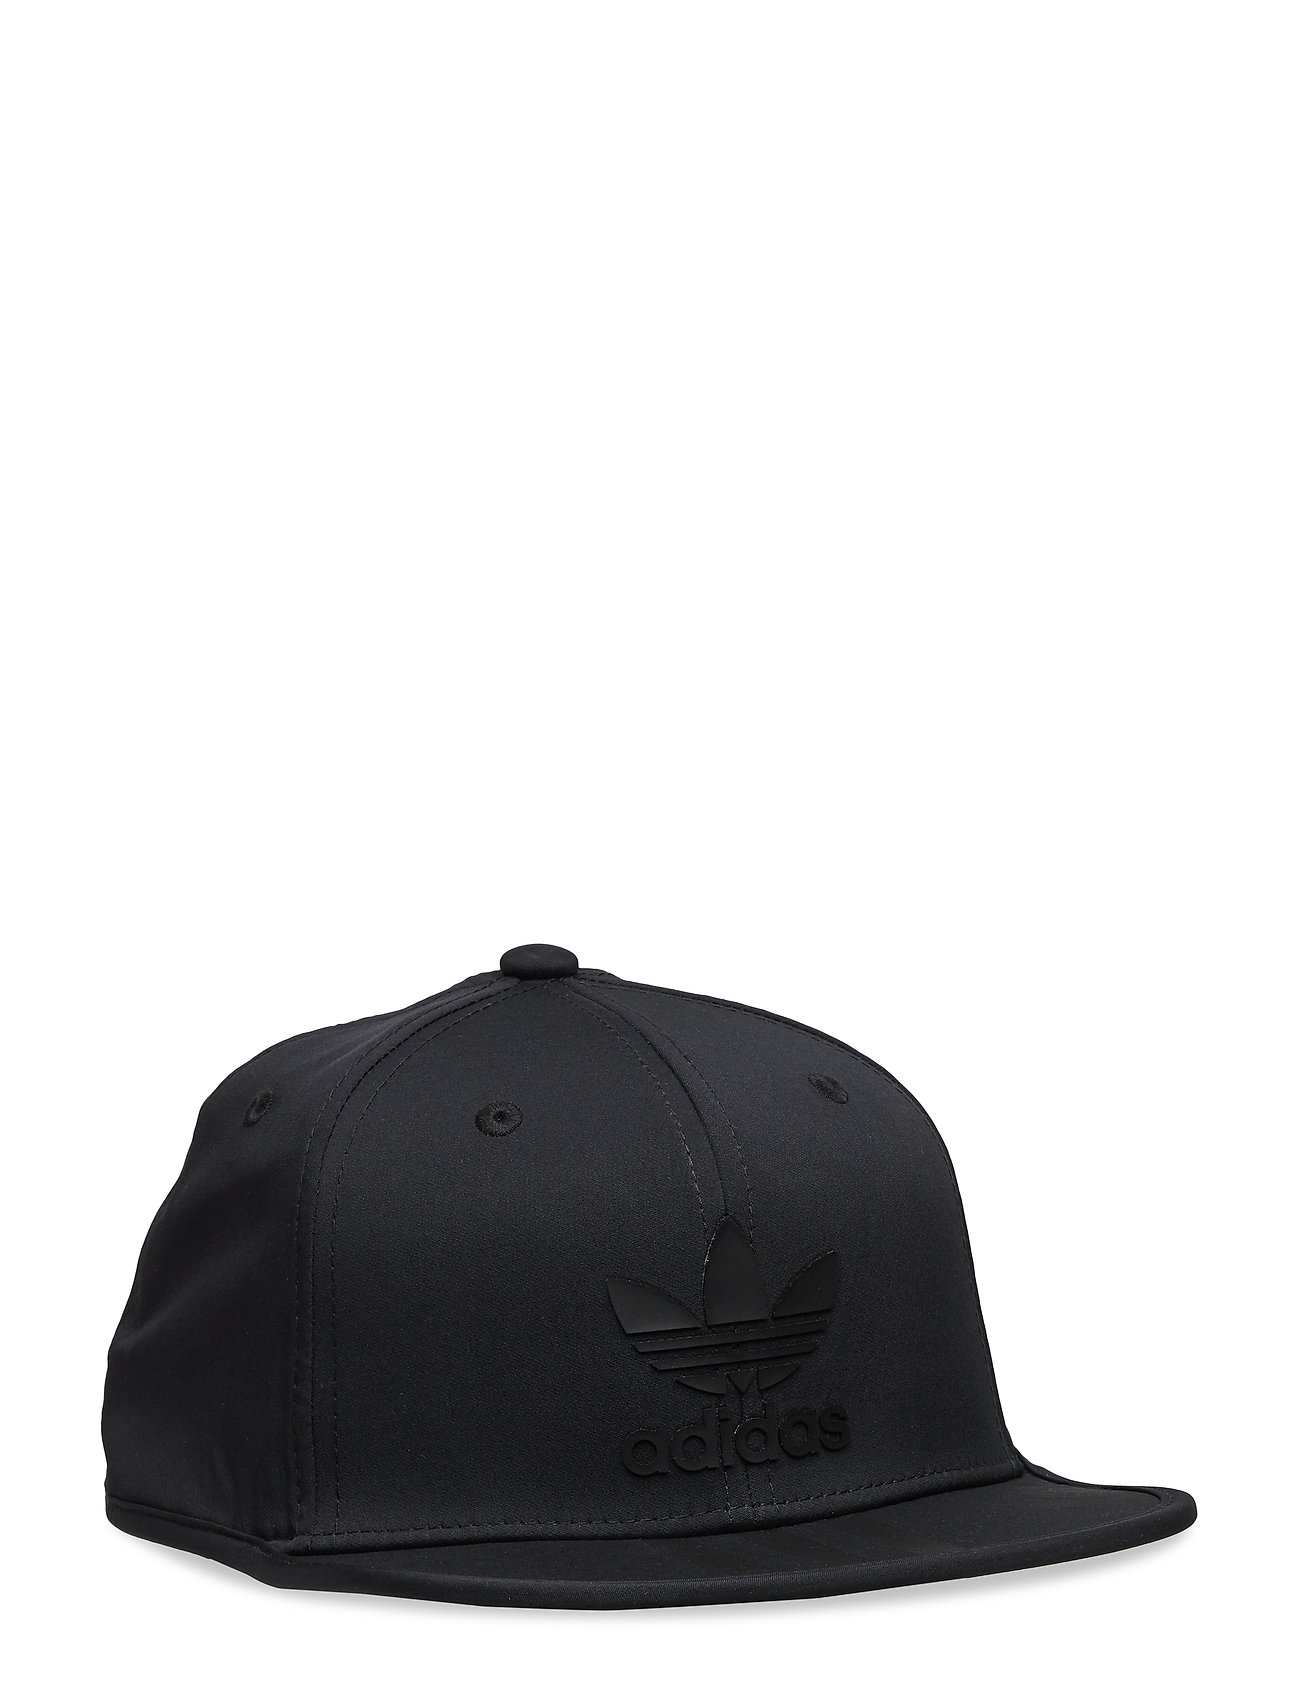 Snapblack blackAdidas Stripe 3 3 Originals Stripe 5Aj34RL